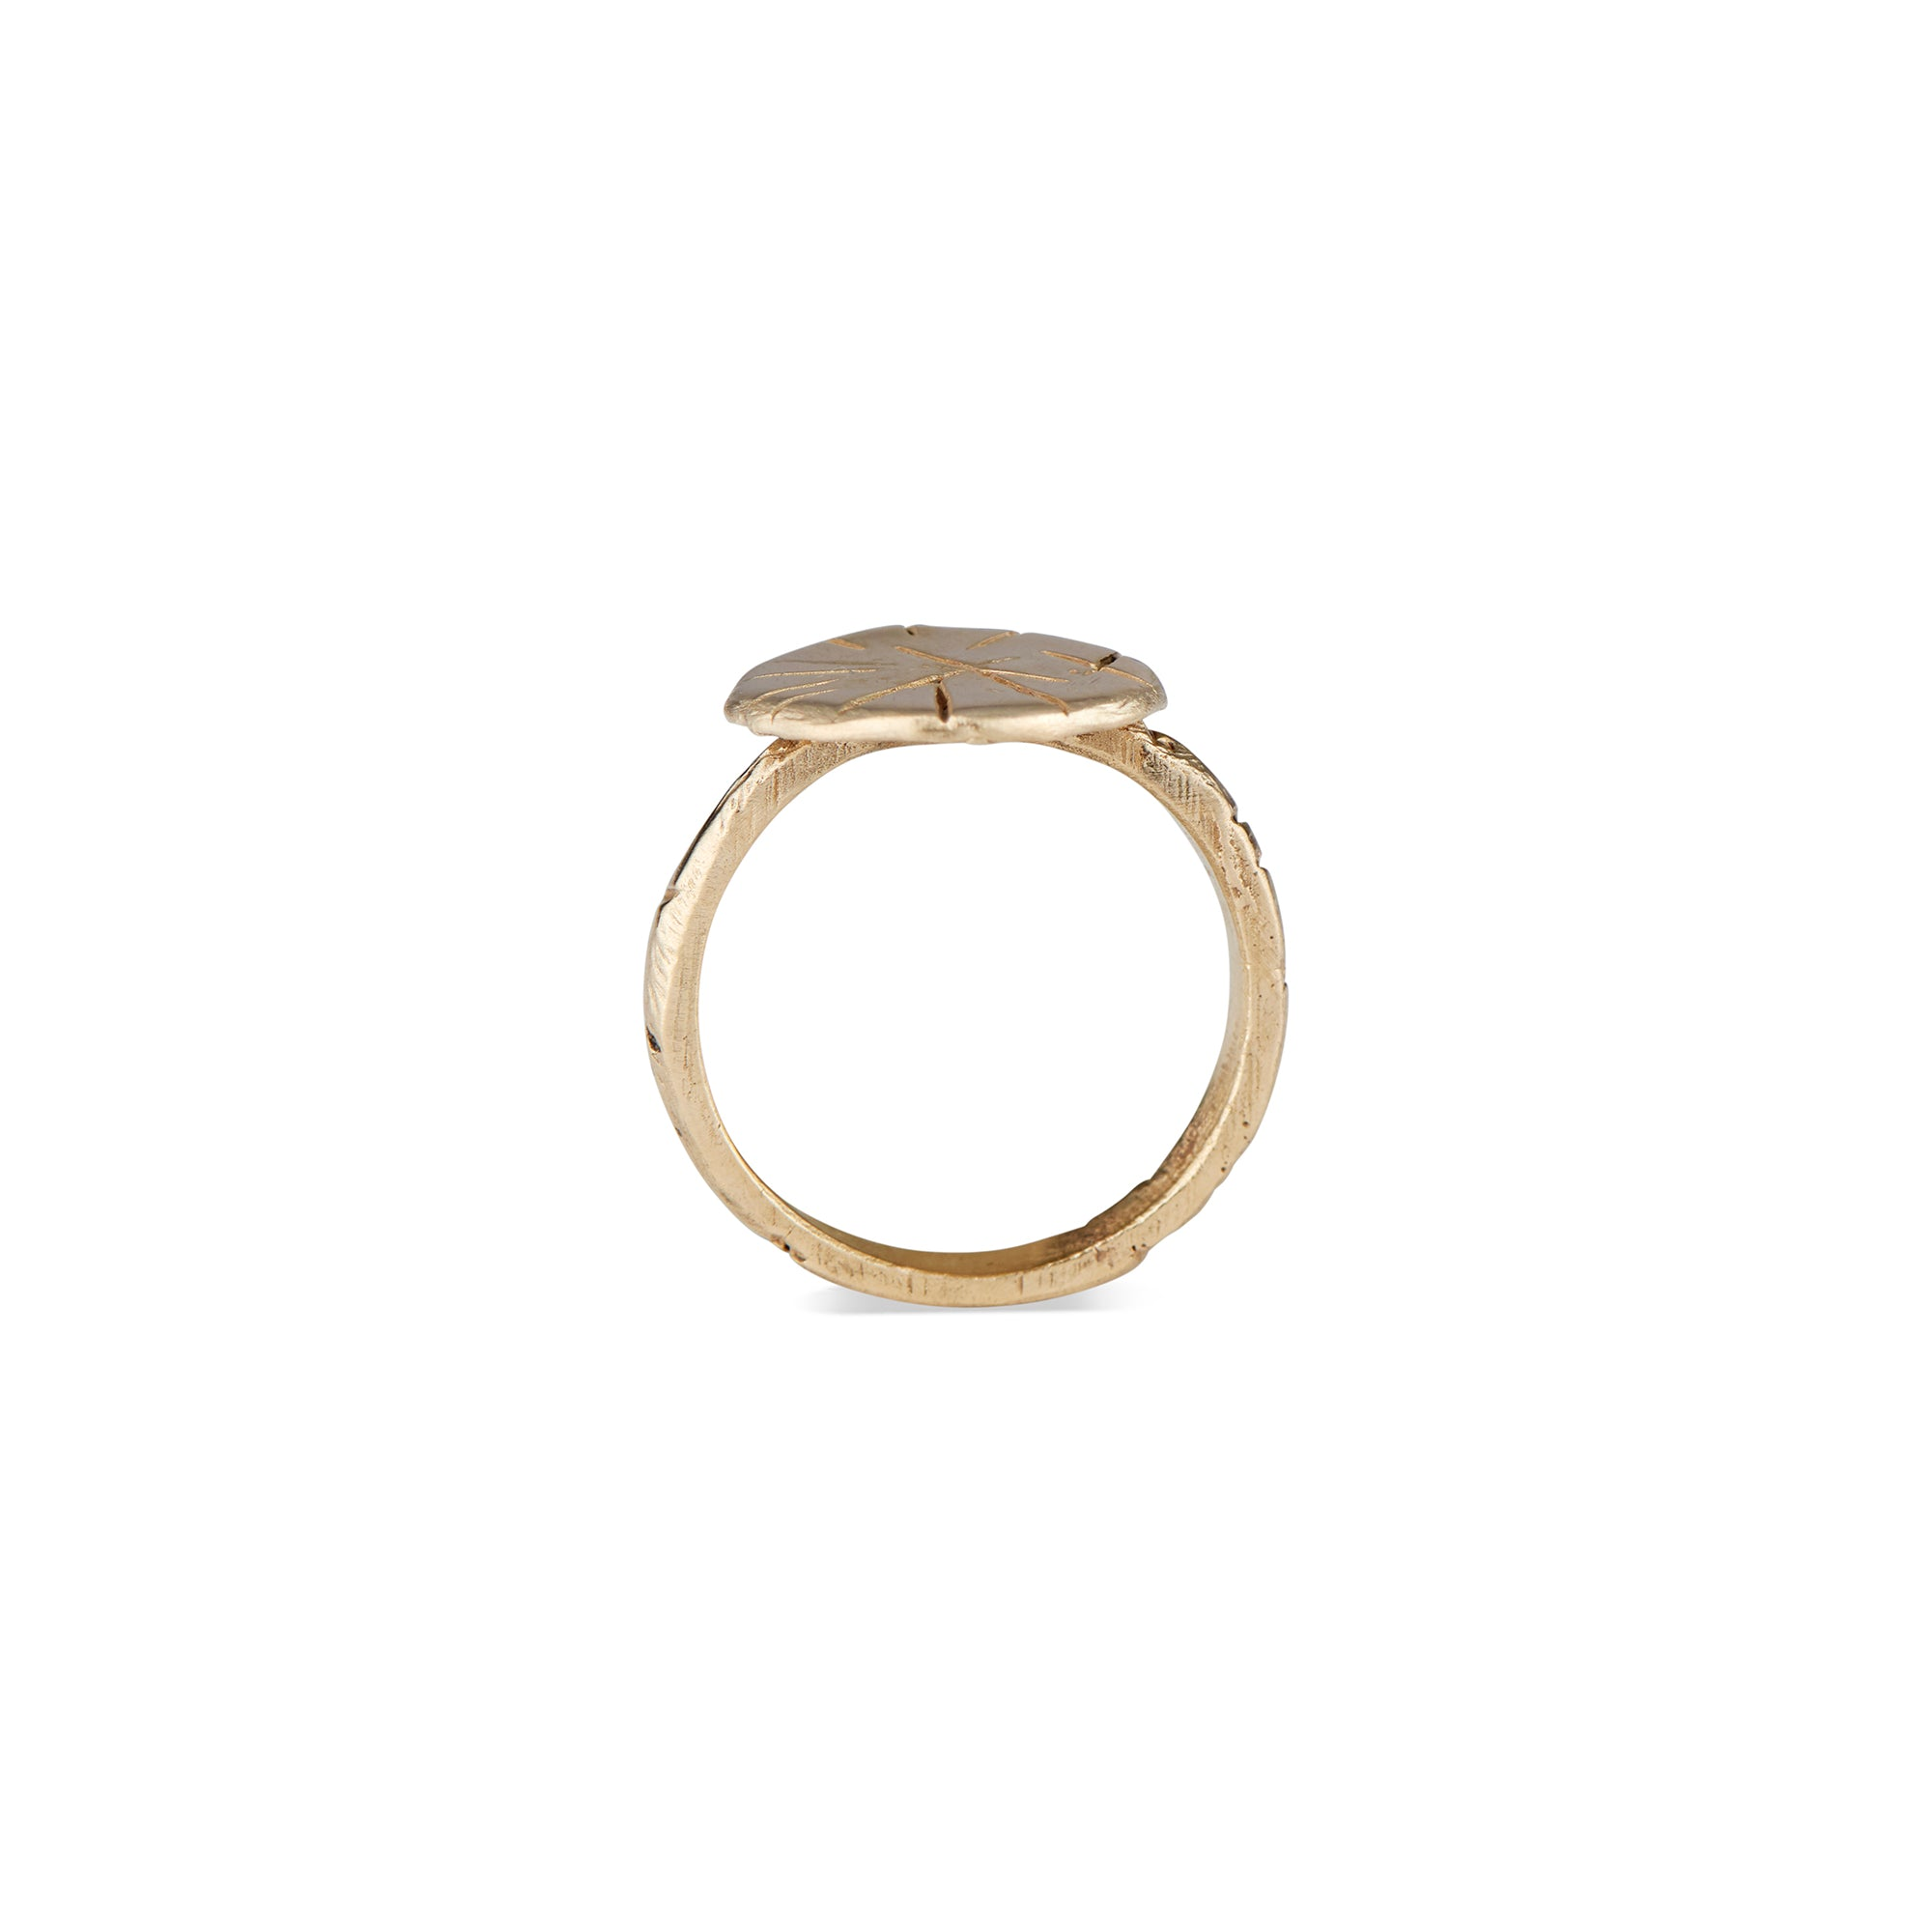 natalie mcmillan jewelry, stackable ring, holiday gift ideas, gifts for bridesmaids, los angeles style, solid gold ring, statement ring, ethically sourced metals, los angeles based jewelry artist, effortless every day jewelry, red carpet jewelry